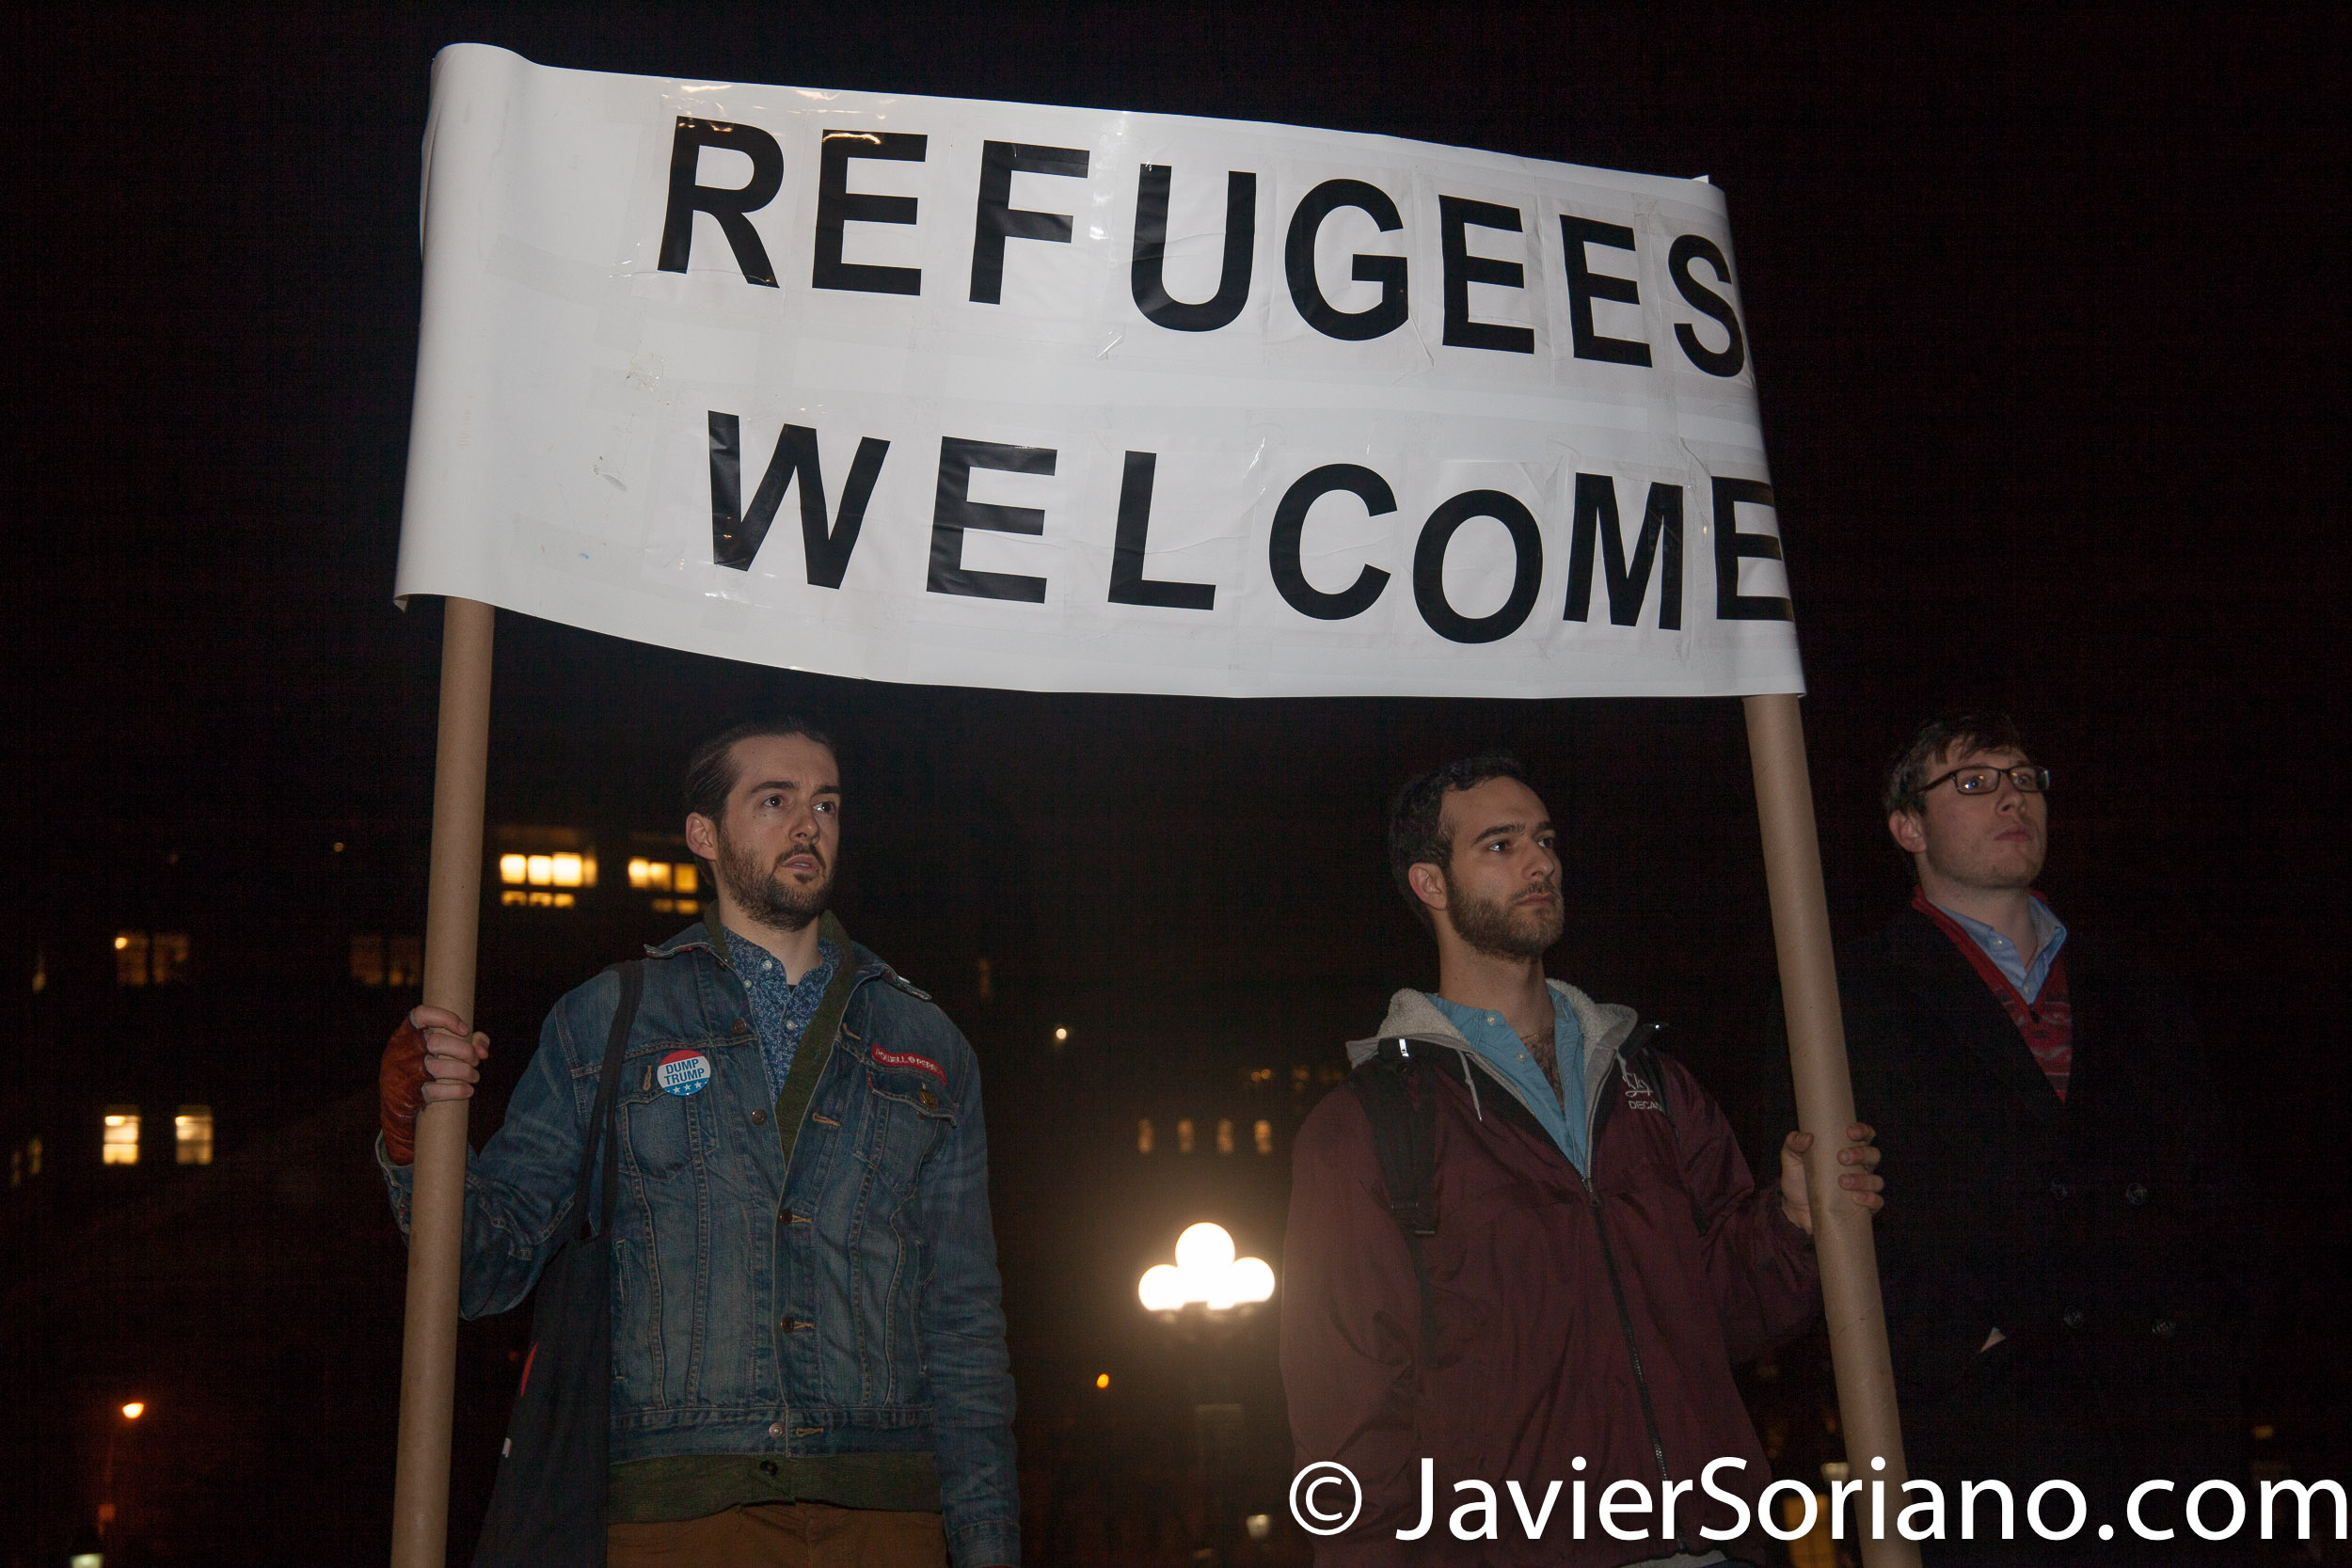 1/25/2017 Washington Square Park, NYC - New Yorkers support Muslims, Immigrants, Refugees. Photo by Javier Soriano/www.JavierSoriano.com